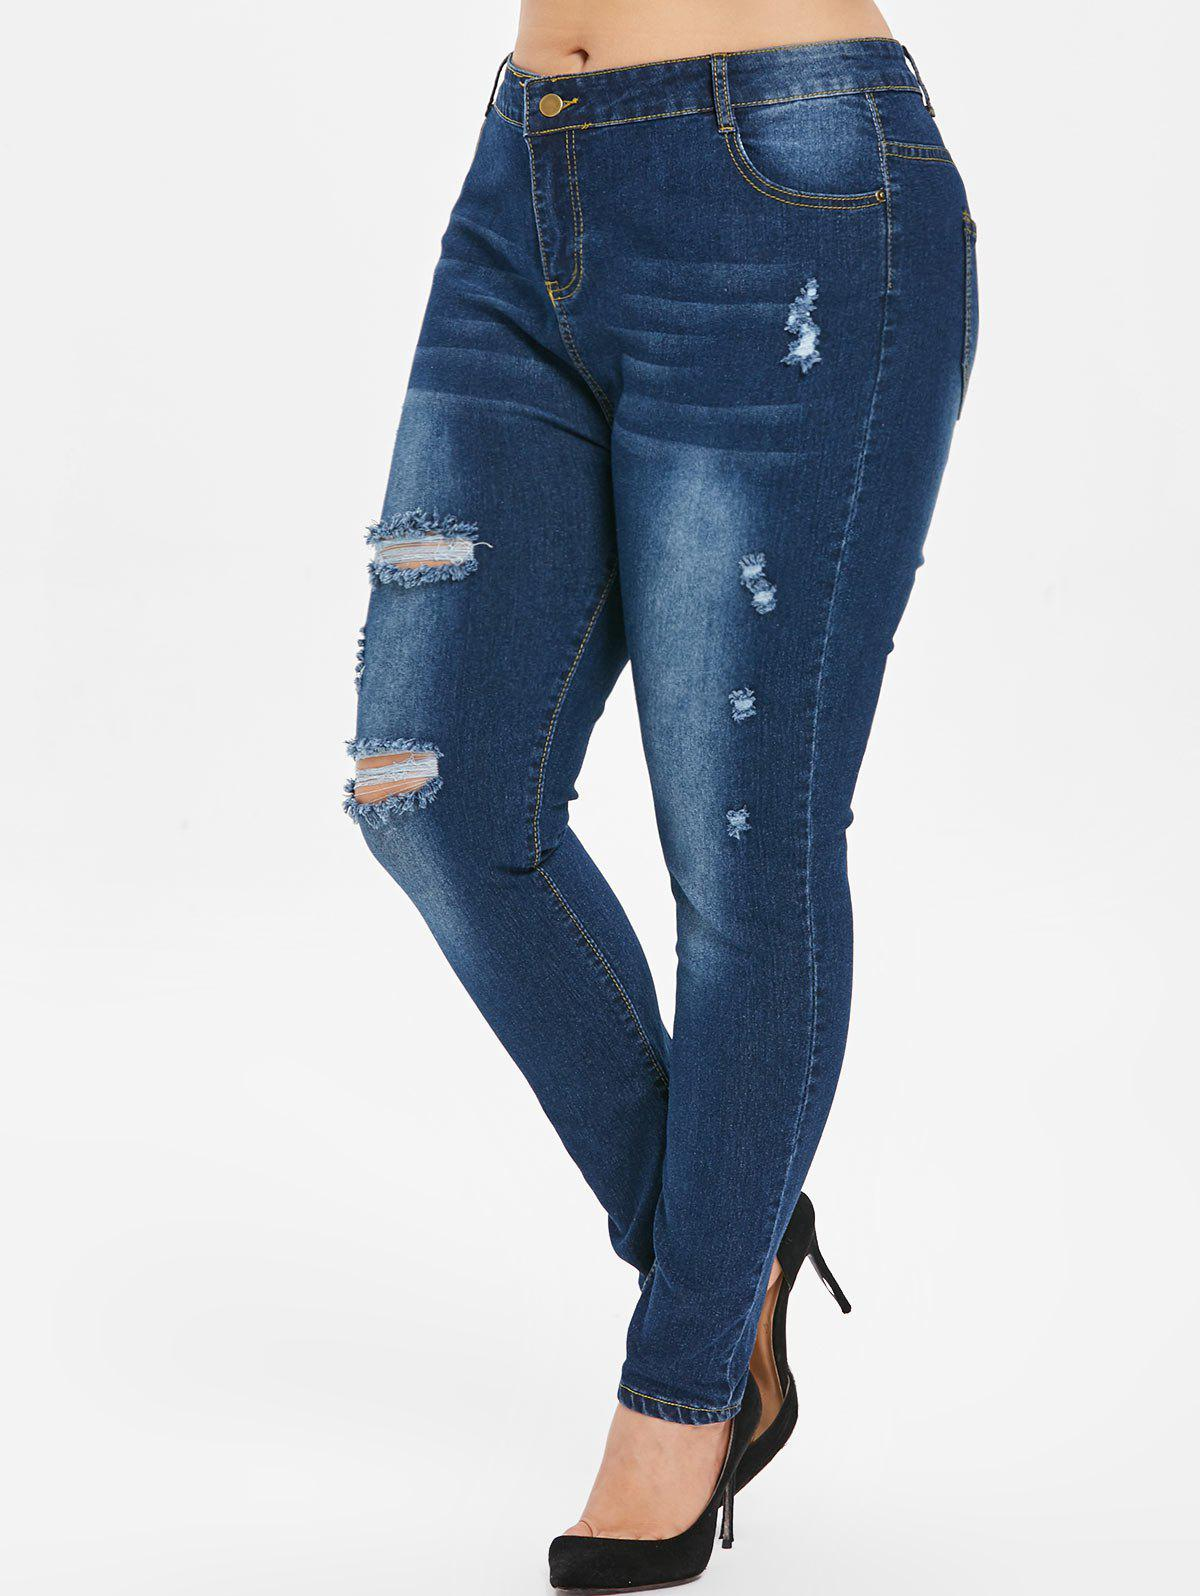 New Plus Size Distressed Dark Wash Jeans